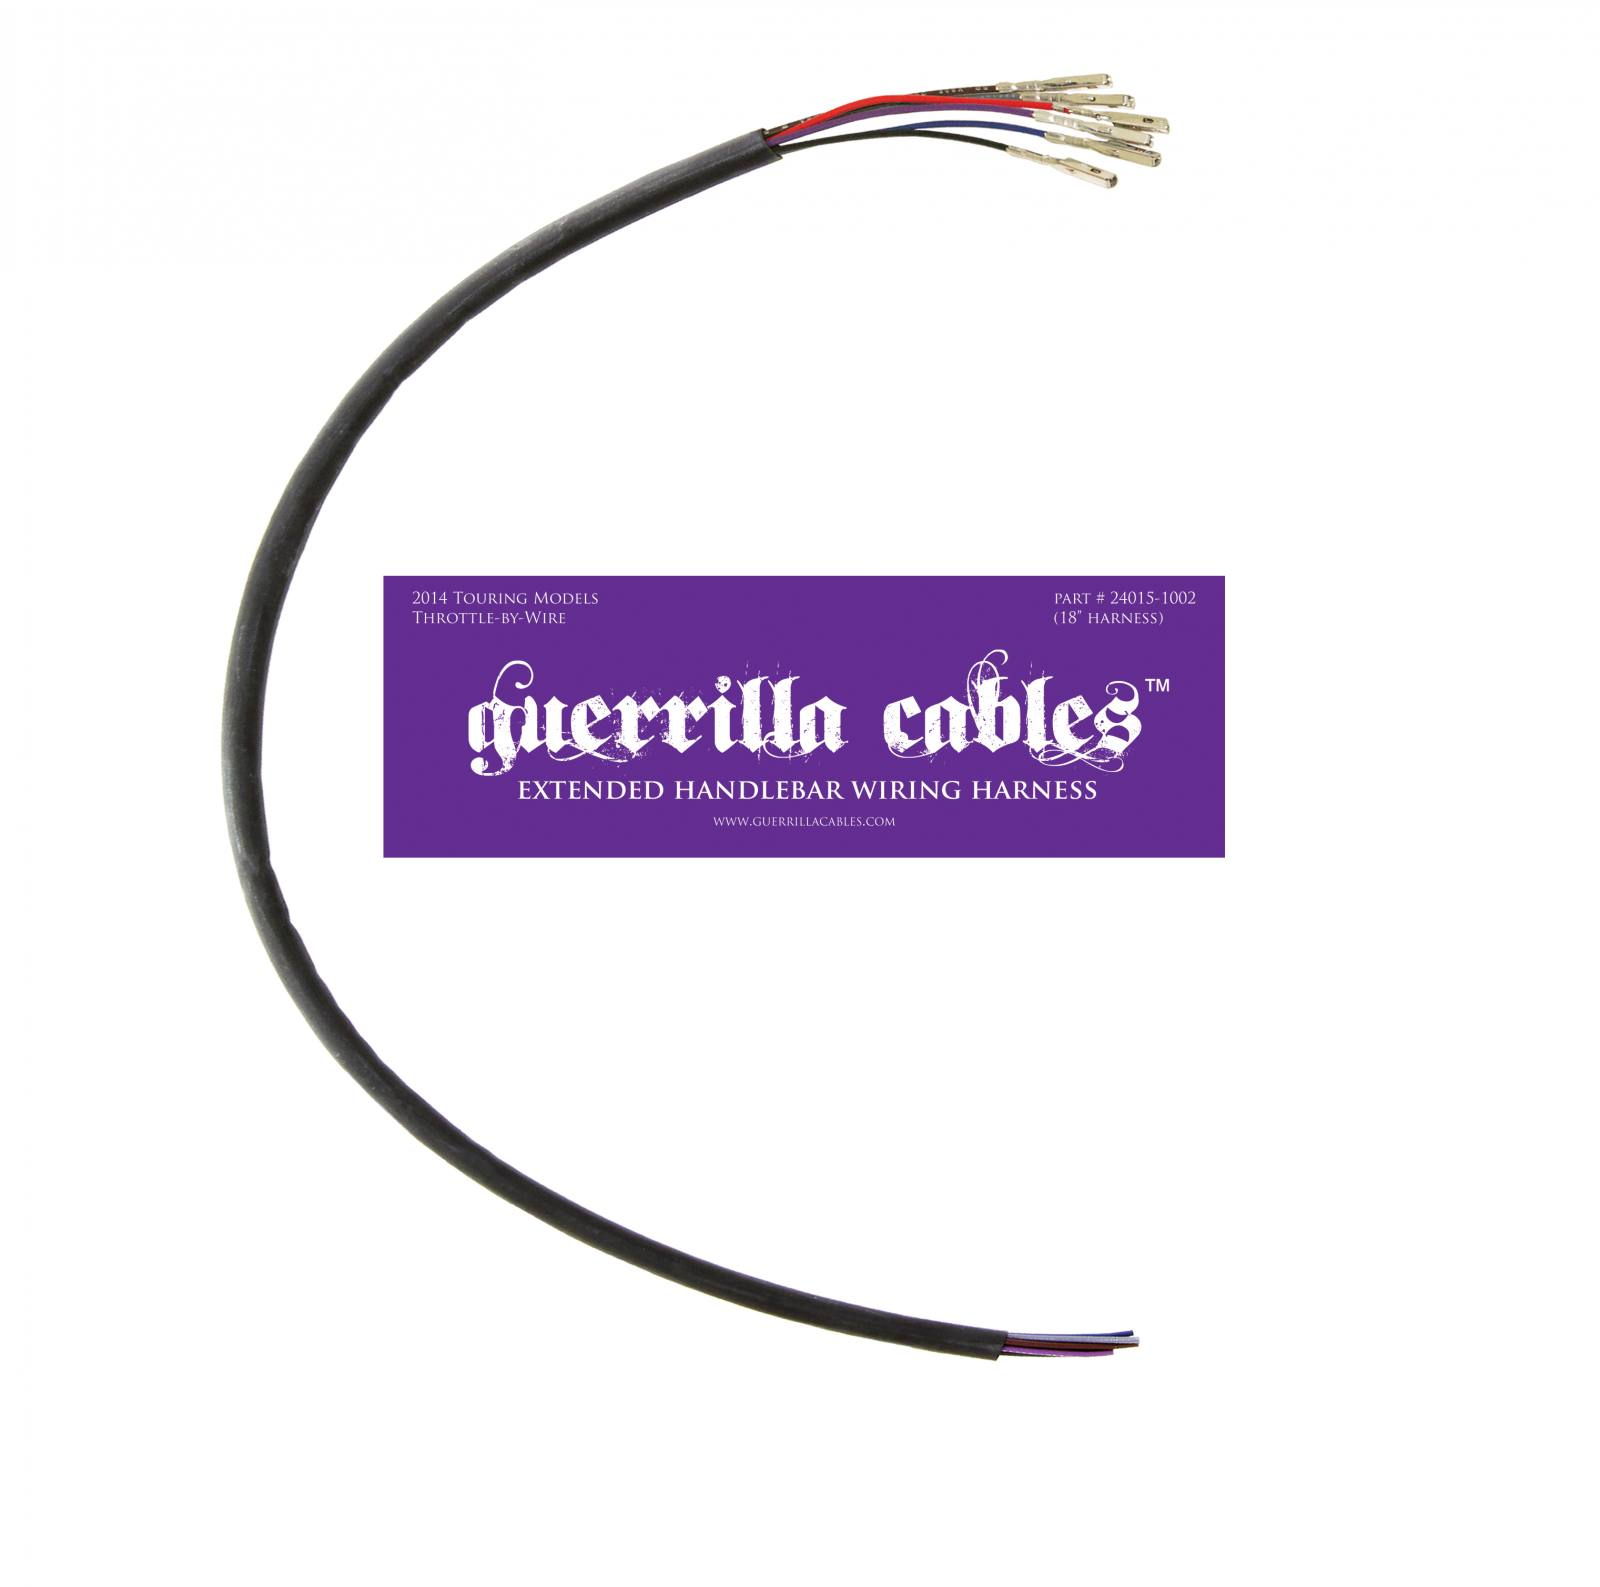 Throttle-by-Wire Harness for CAN-Bus Models